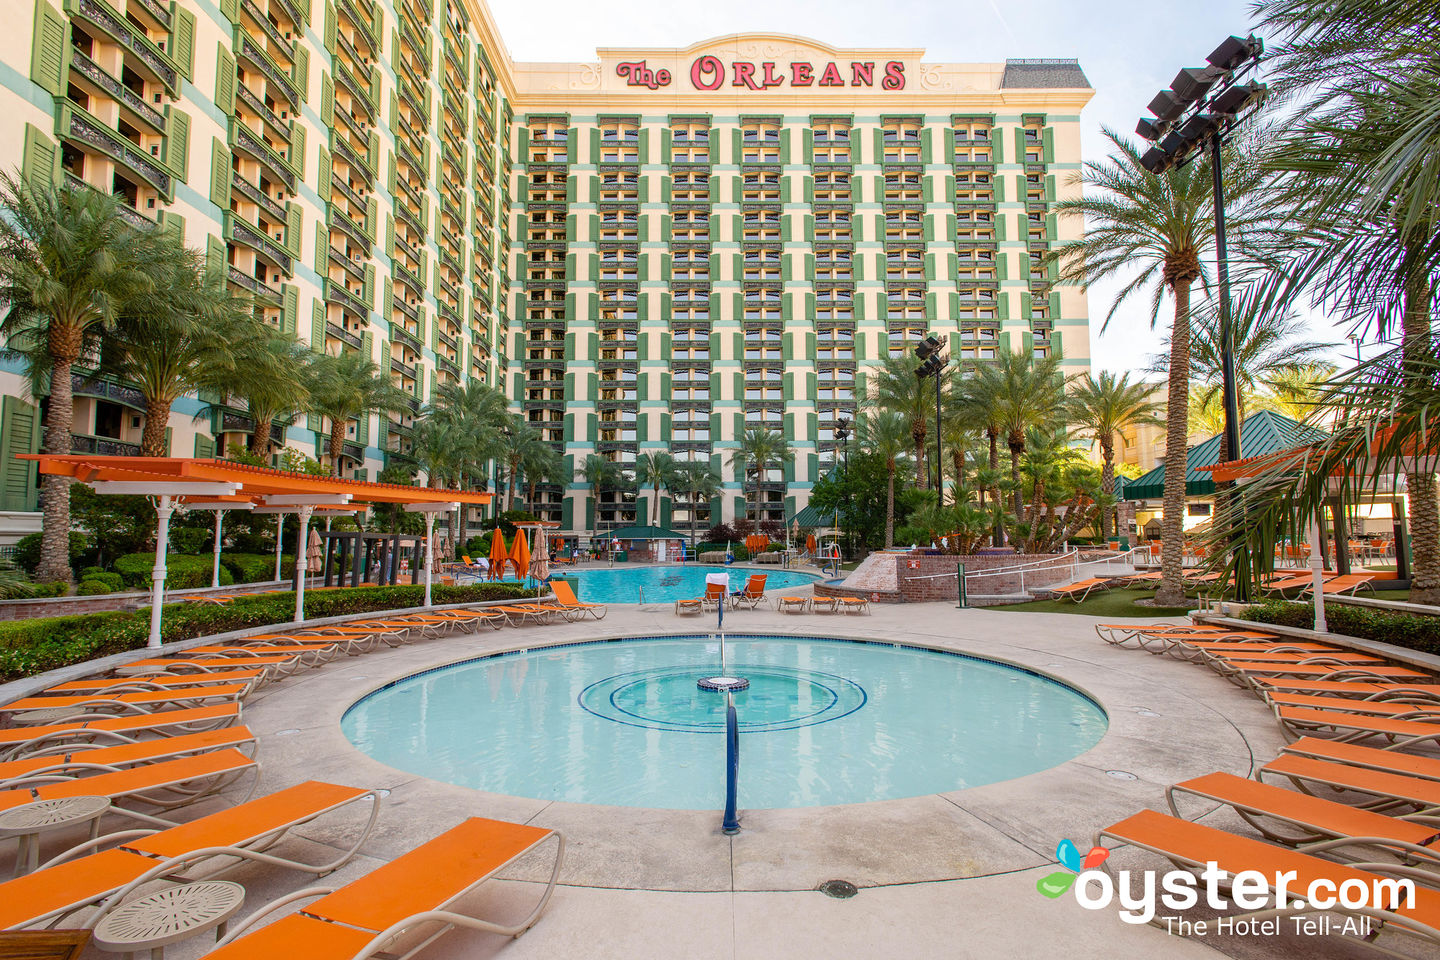 The Orleans Hotel Casino Review What To Really Expect If You Stay